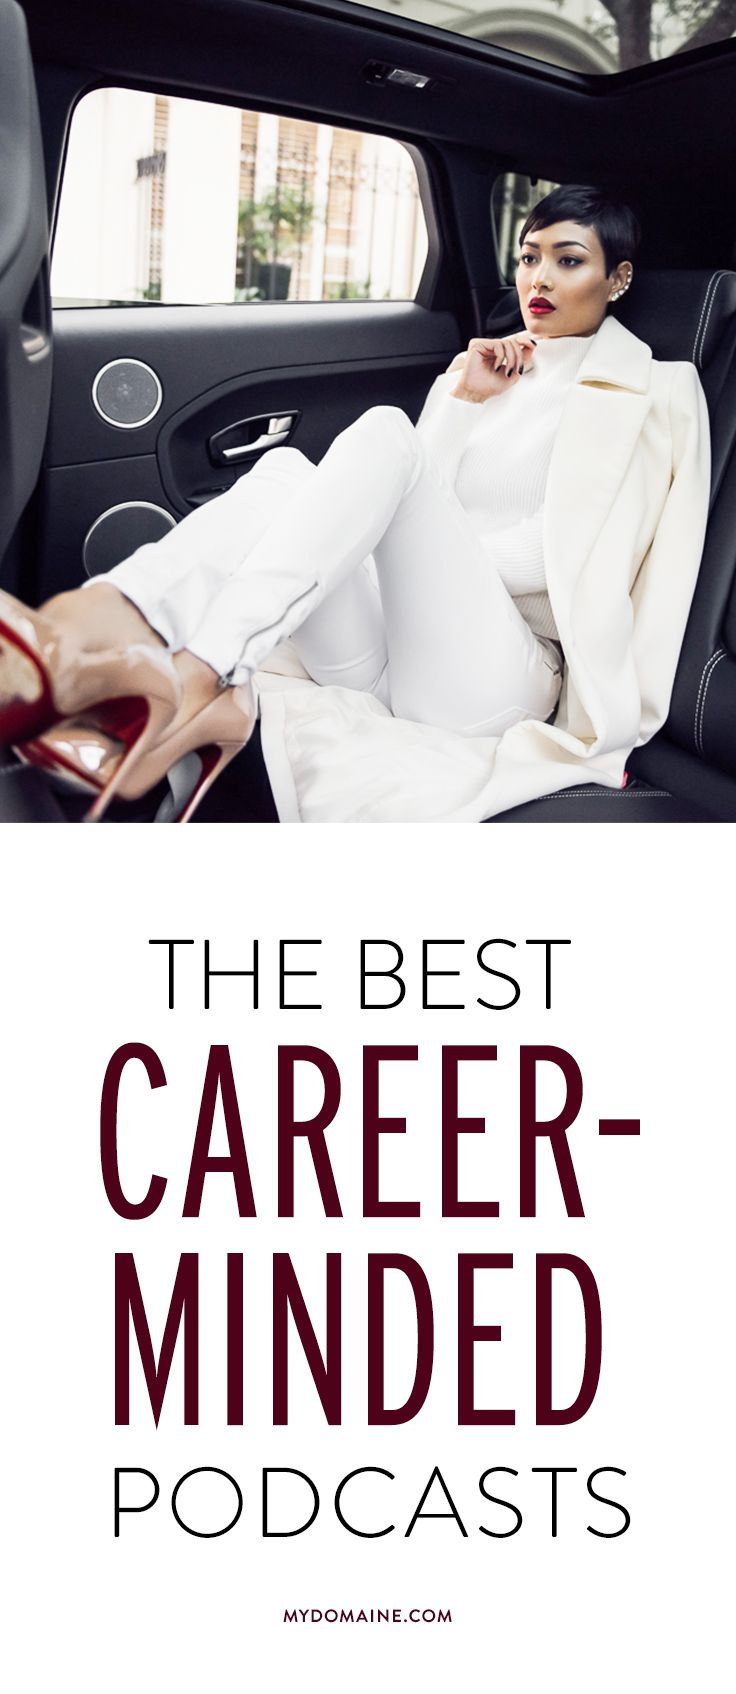 listen to these and see your career horizons broaden career tips - Career Advice Career Tips From Professional Experts